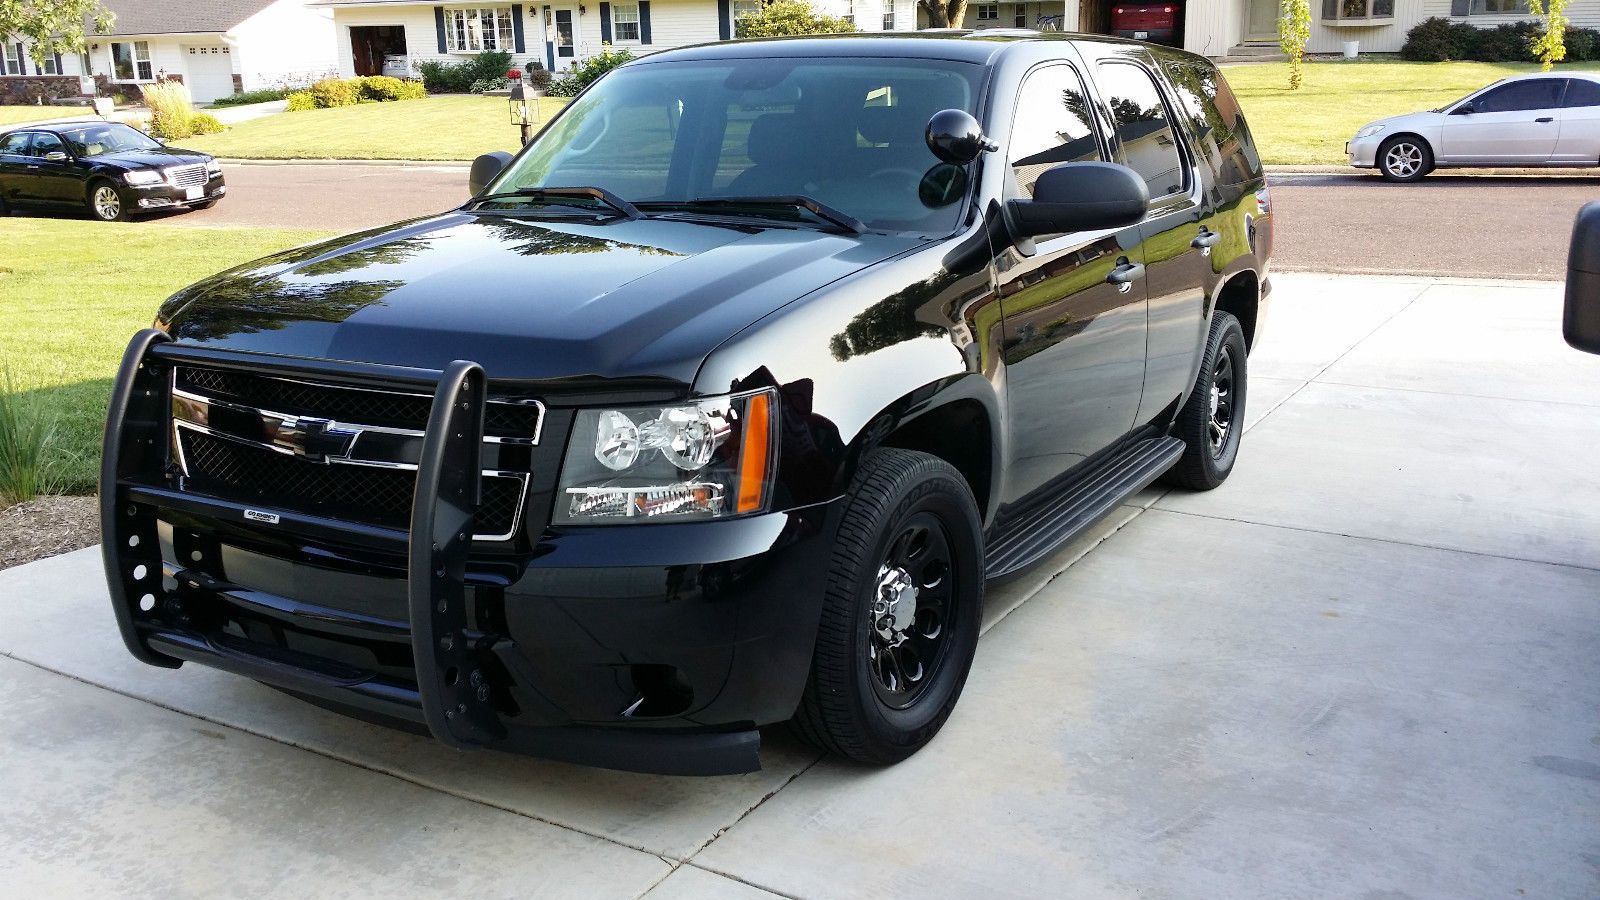 2009 Chevy Tahoe Police Pursuit Vehicle Chevy Tahoe Police